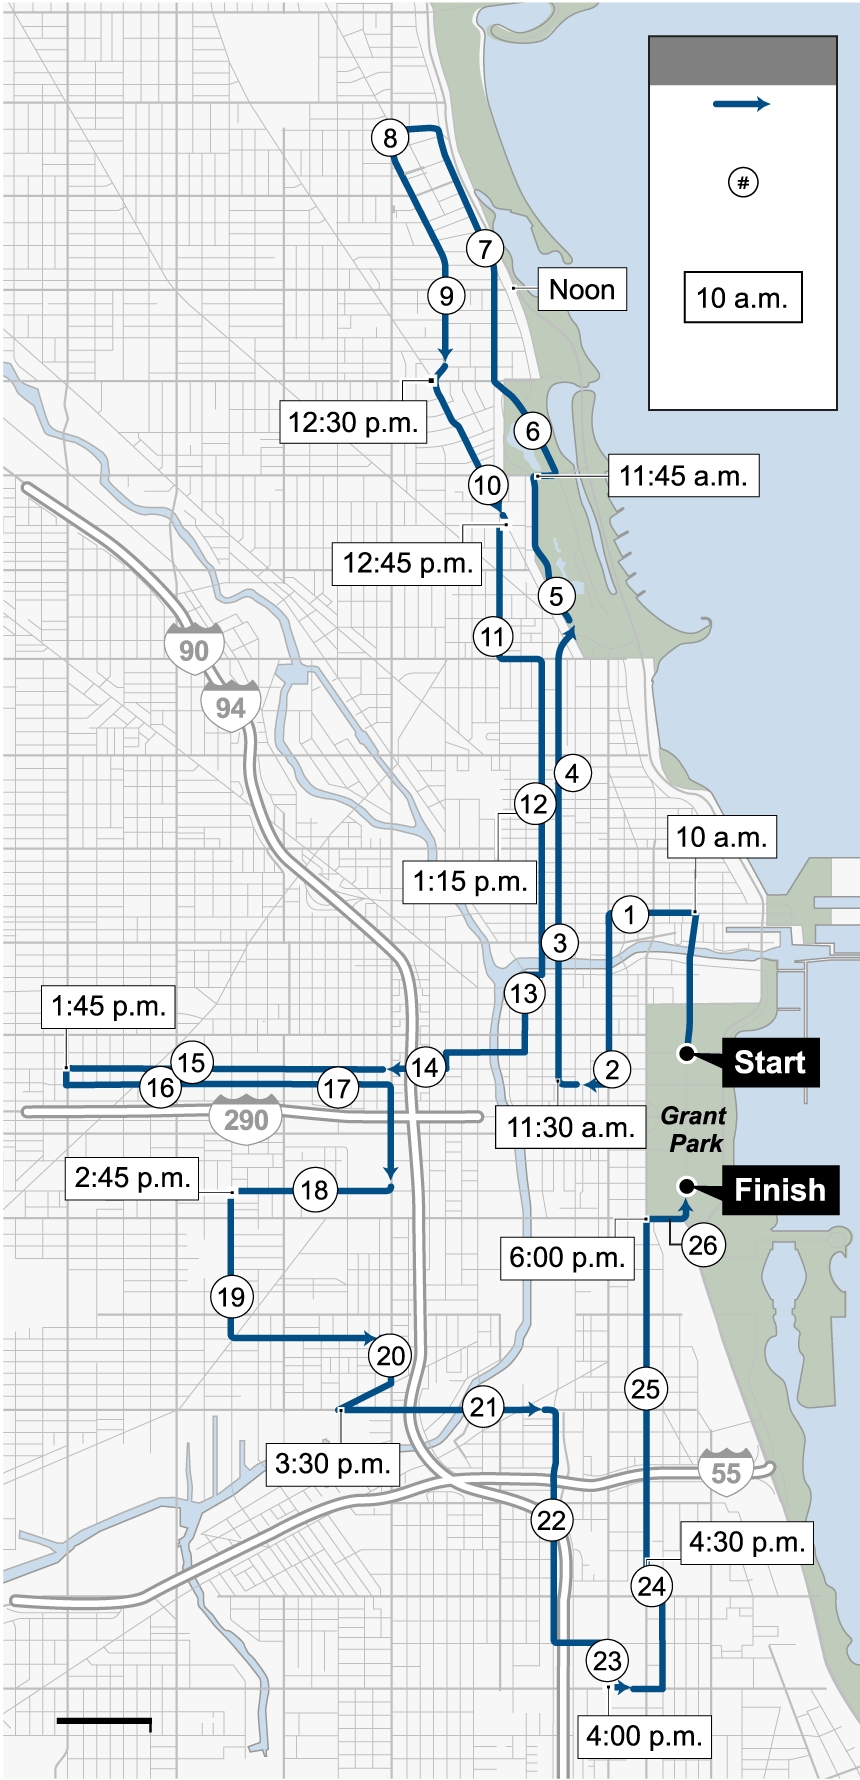 Chicago Marathon 2019: Course Map, Where To Watch The Race for Chicago Marathon Map